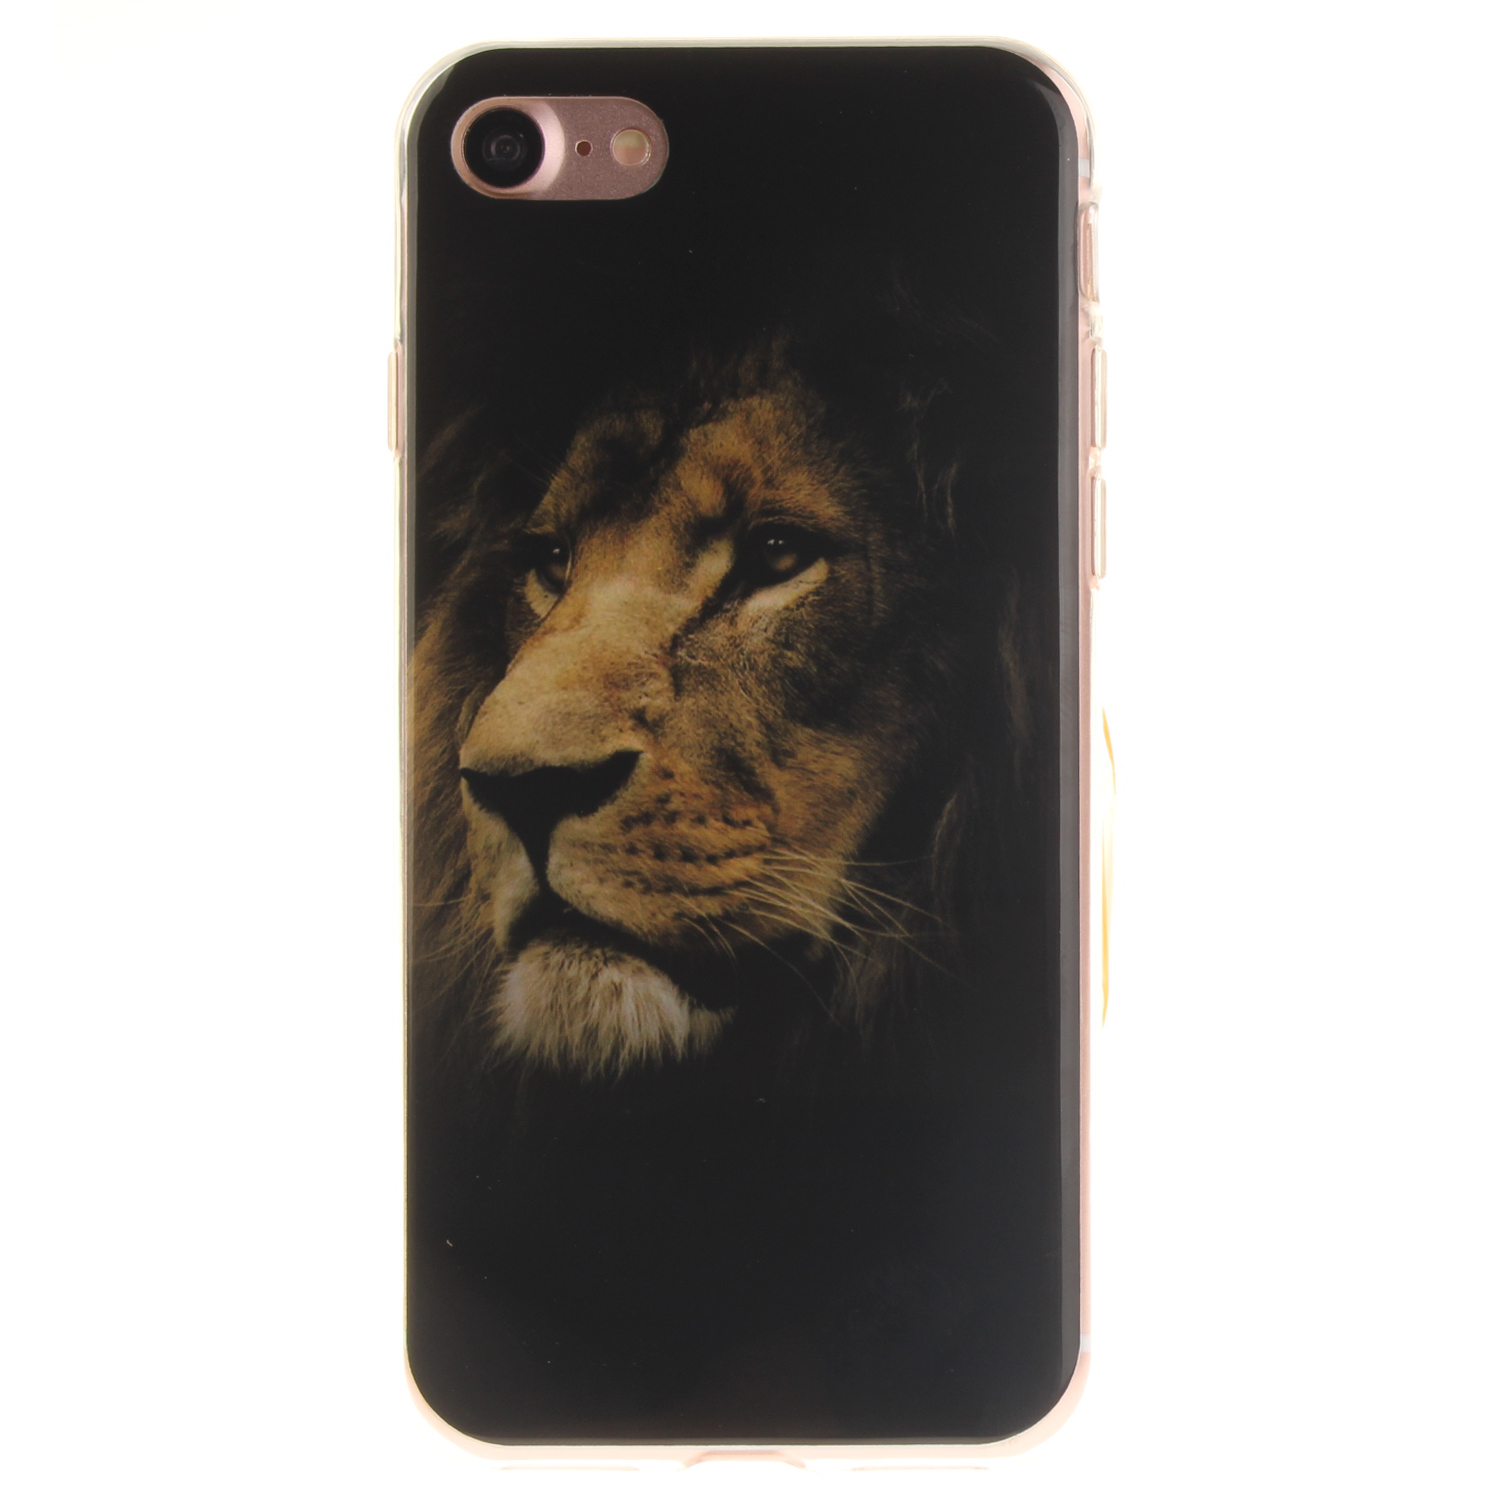 iPhone 7 Case Pattern Printed Soft Protective Cover for iPhone 7